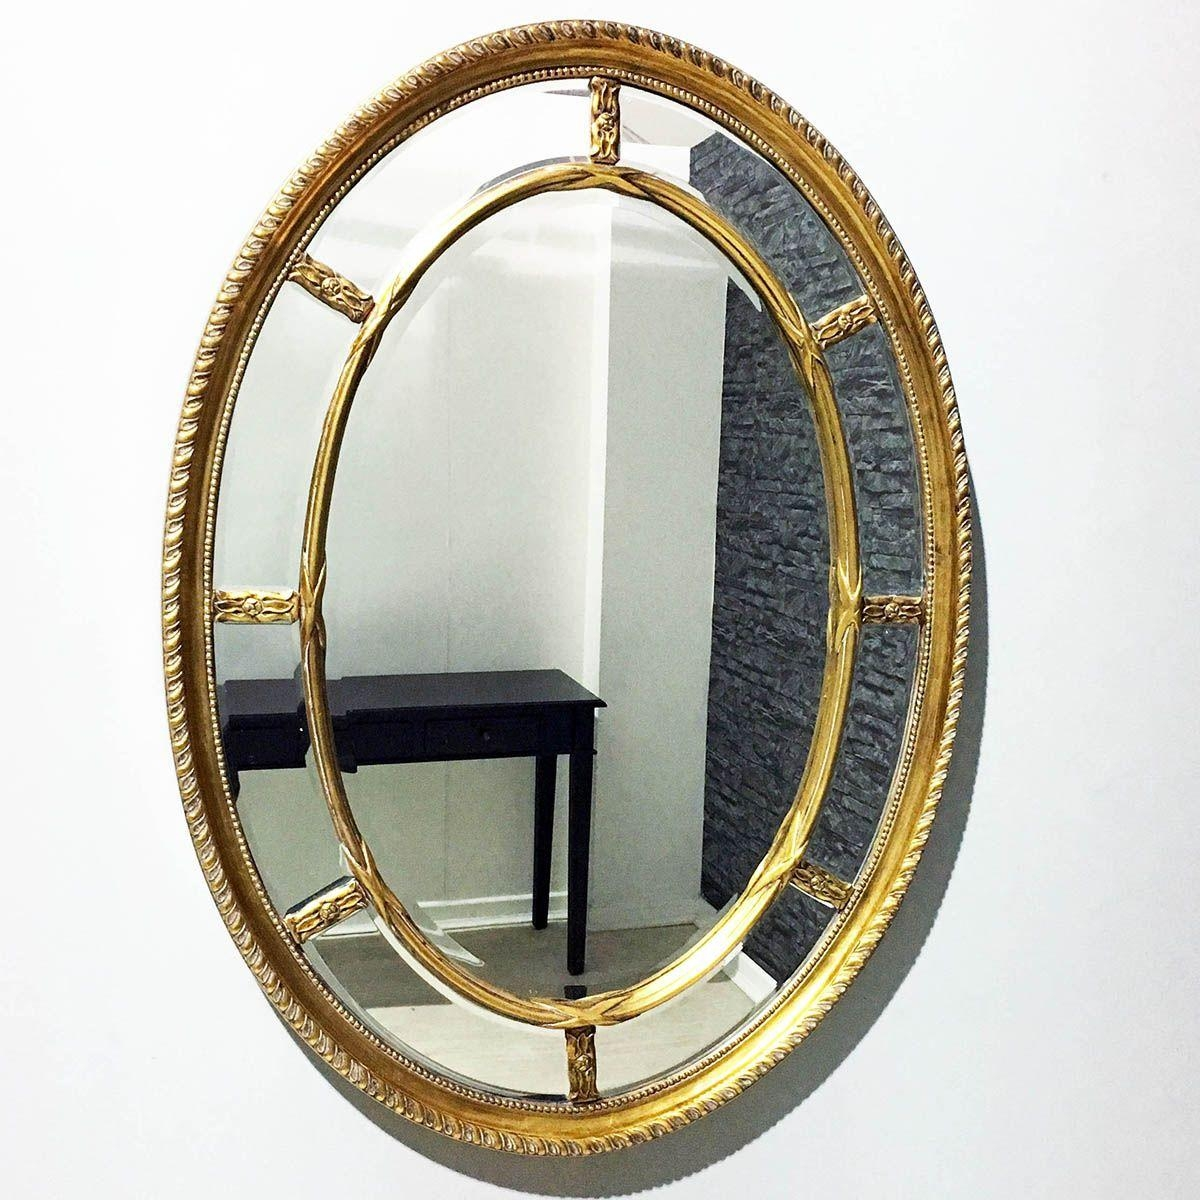 Gold Oval Cameo Style Mirror 110 X 80Cm | Exclusive Mirrors Regarding Gold Oval Mirrors (Image 7 of 20)